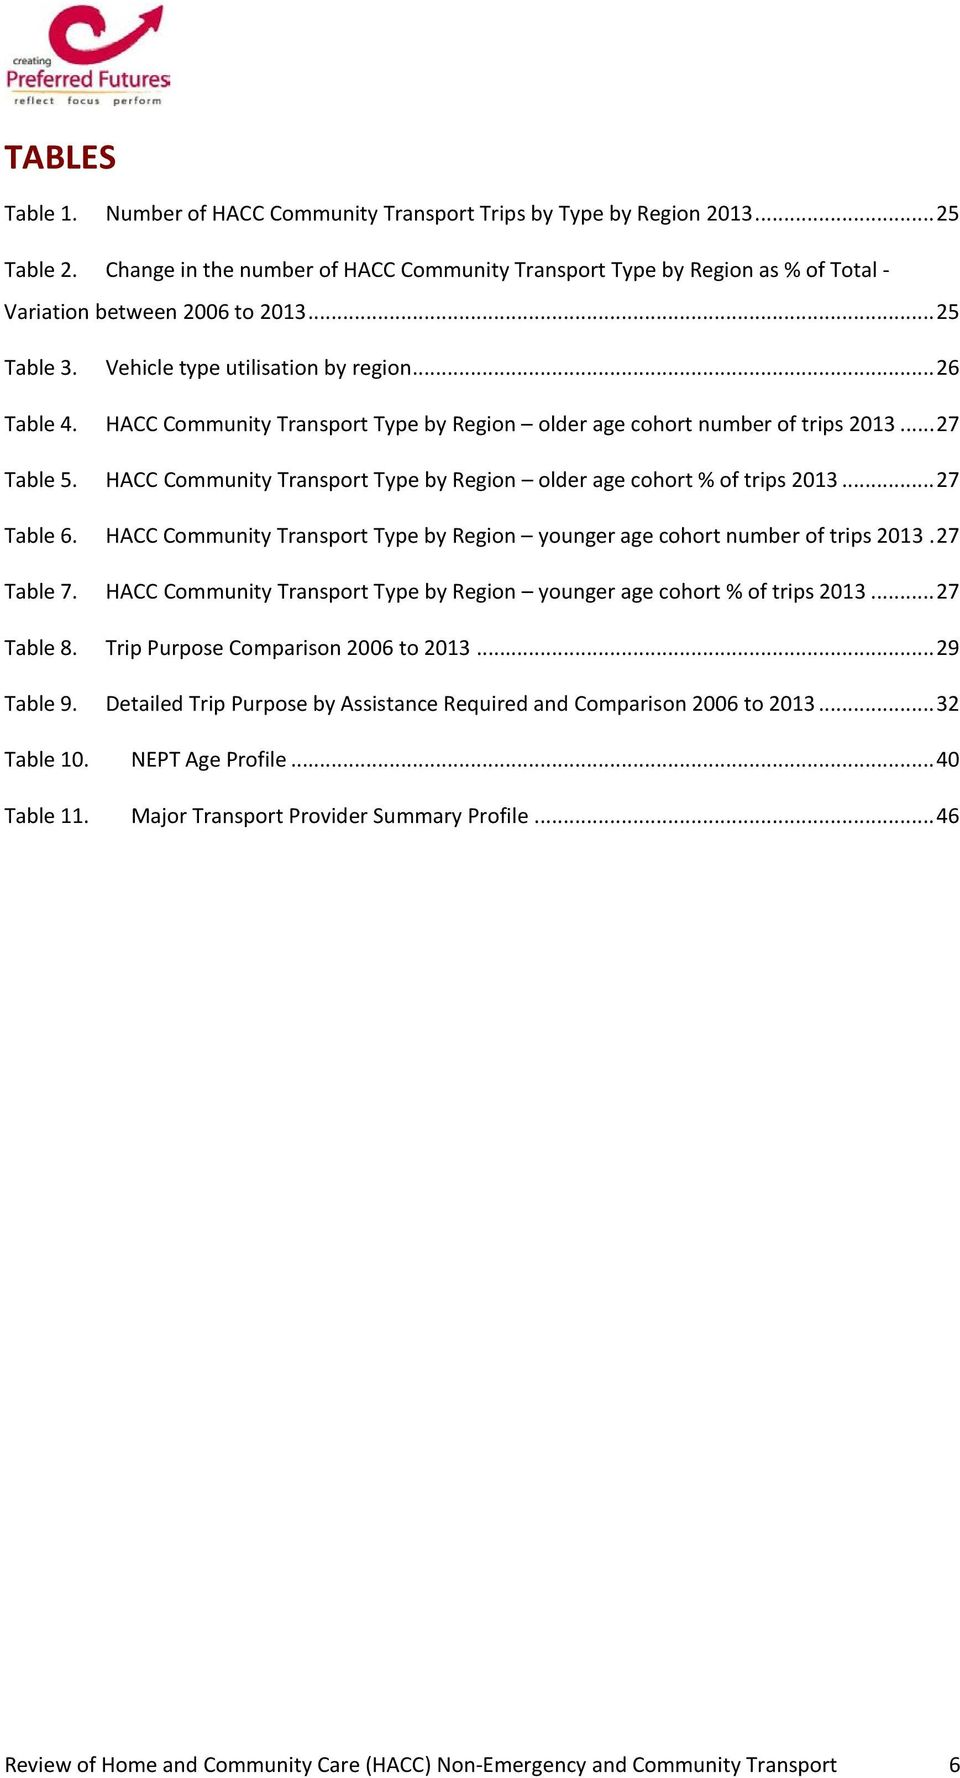 HACC Community Transport Type by Region older age cohort number of trips 2013... 27 Table 5. HACC Community Transport Type by Region older age cohort % of trips 2013... 27 Table 6.